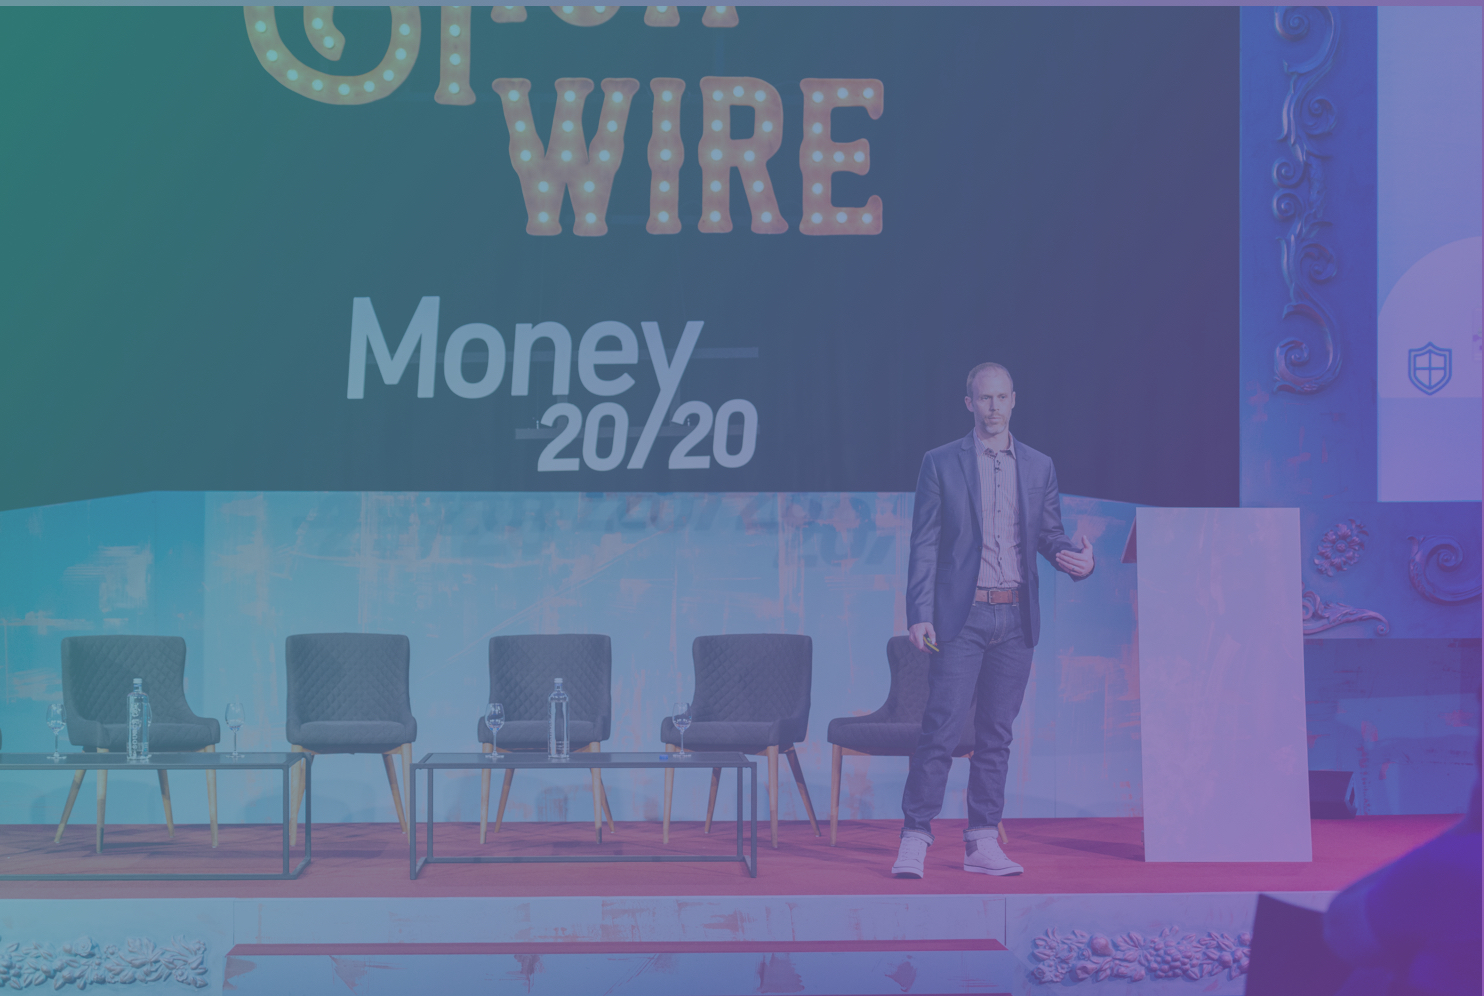 Money 20/20 EU: The Value Chain and Digital Identity